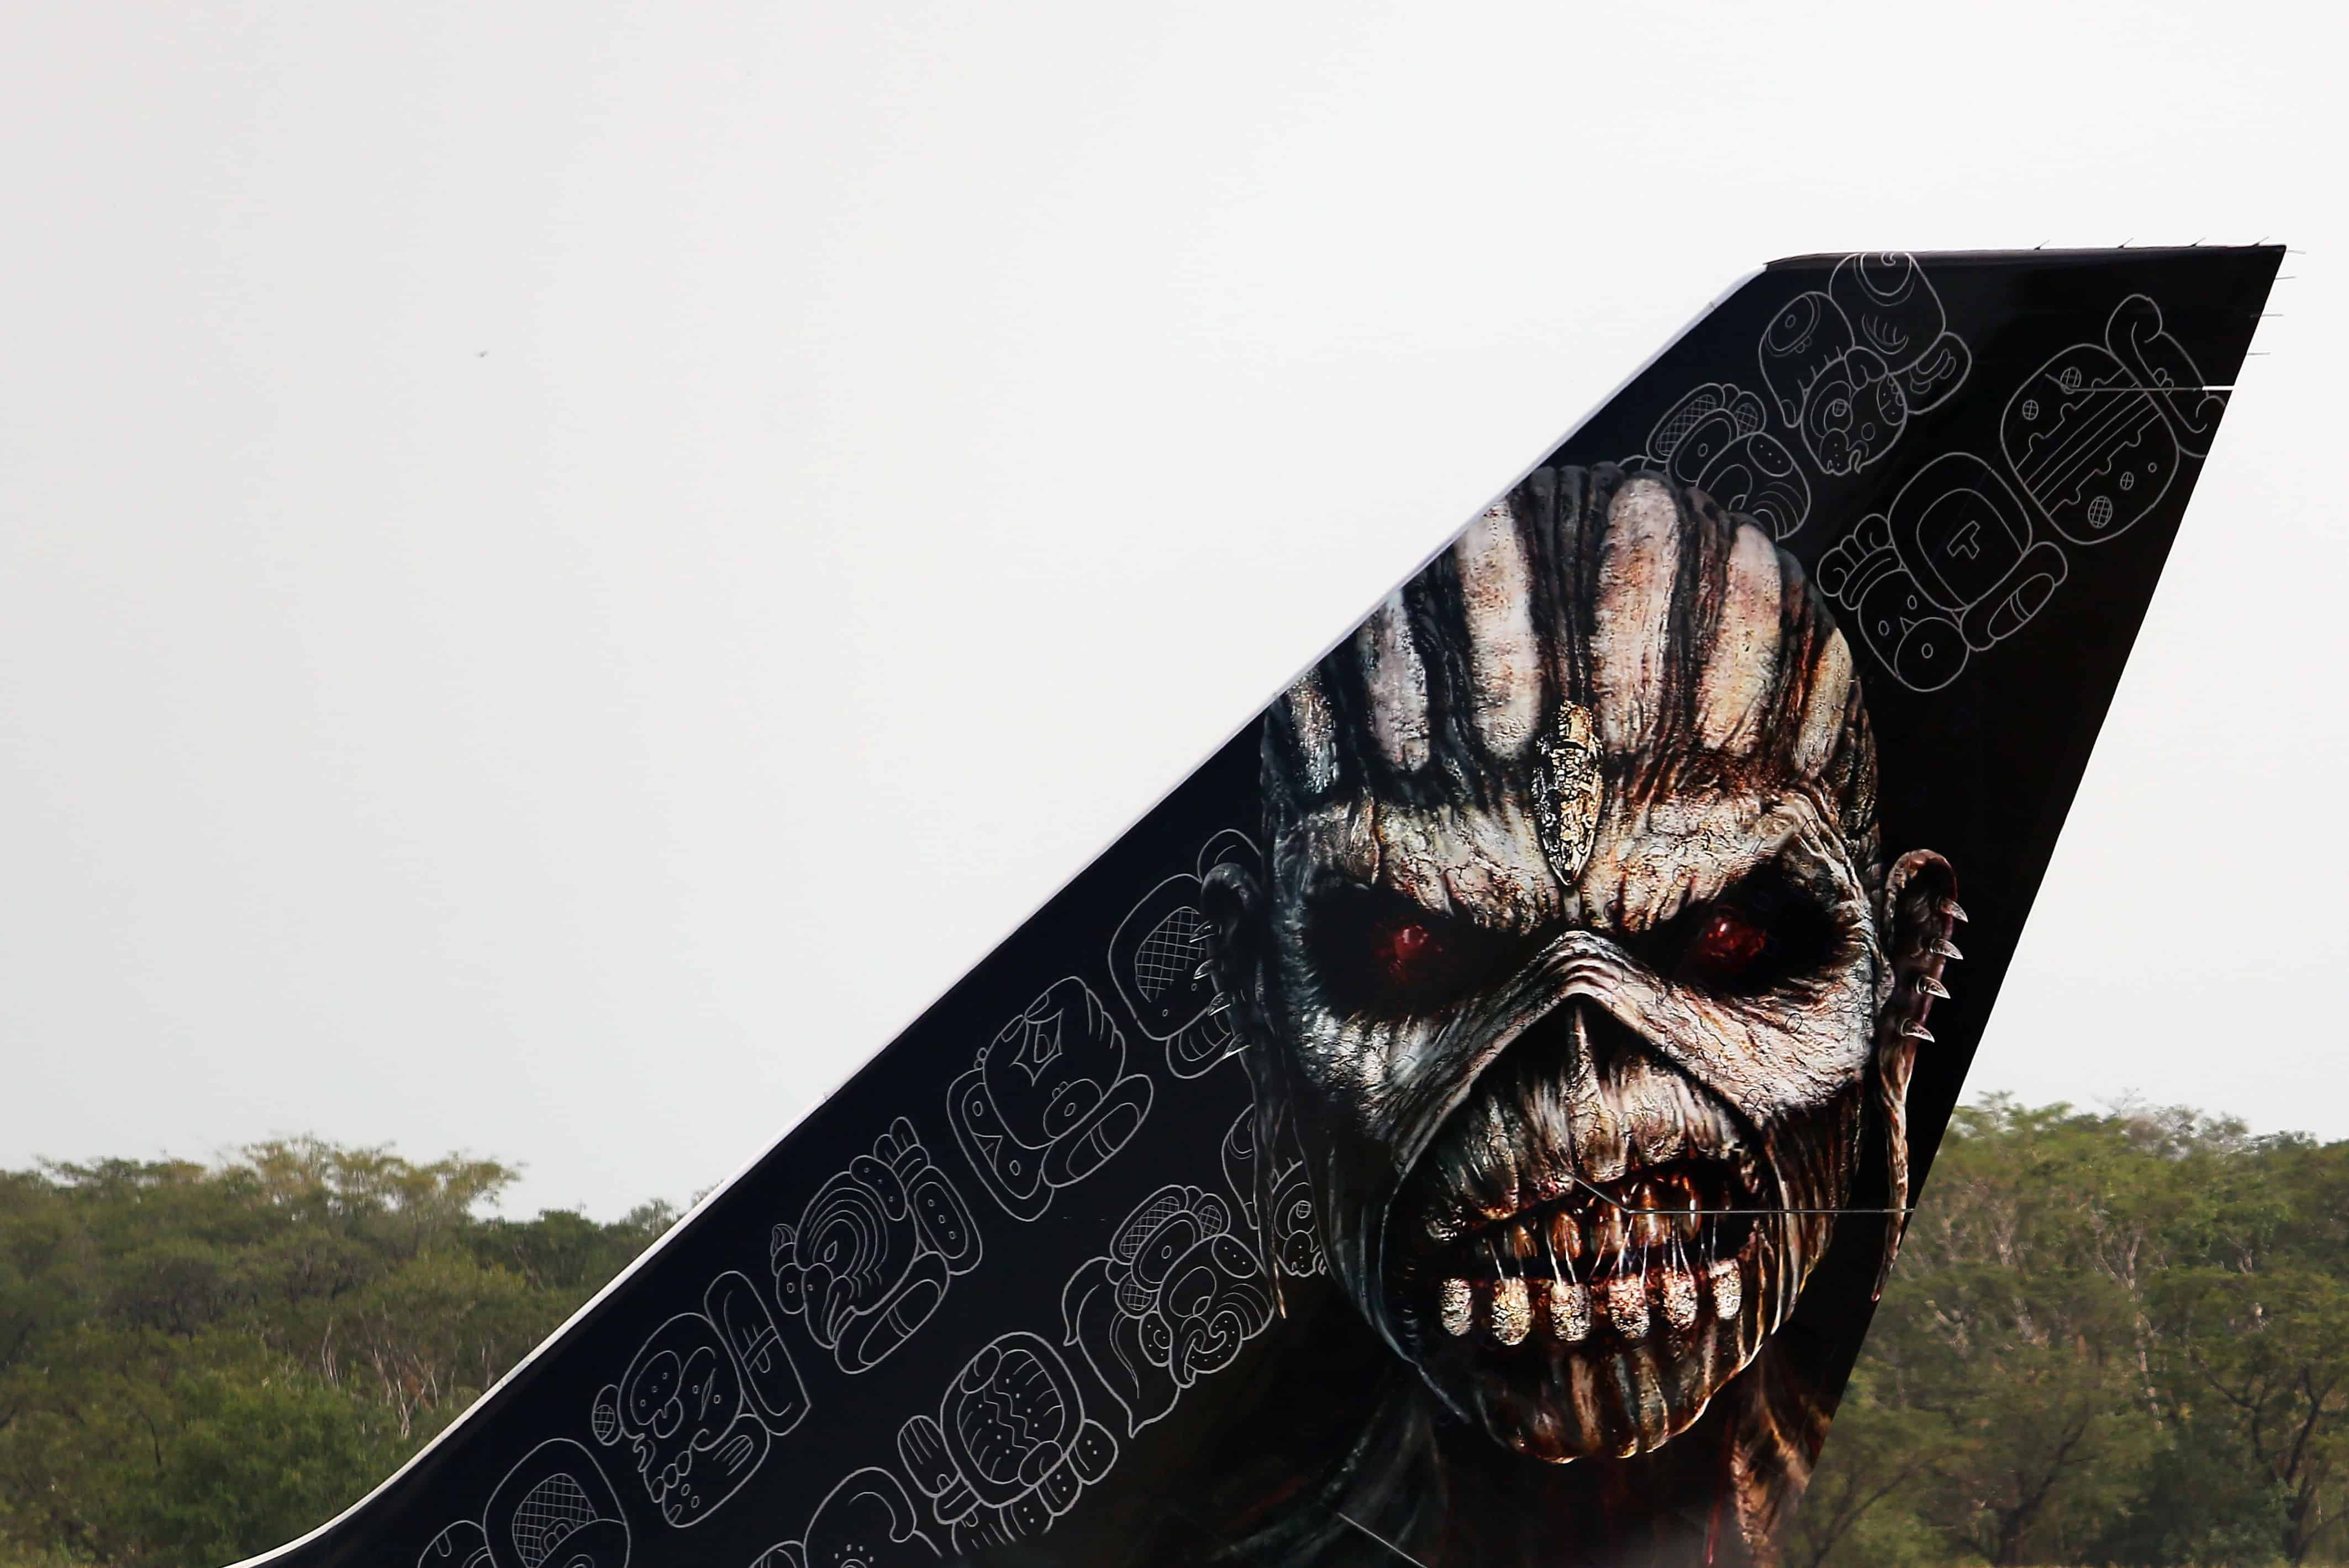 Iron Maiden plane tail